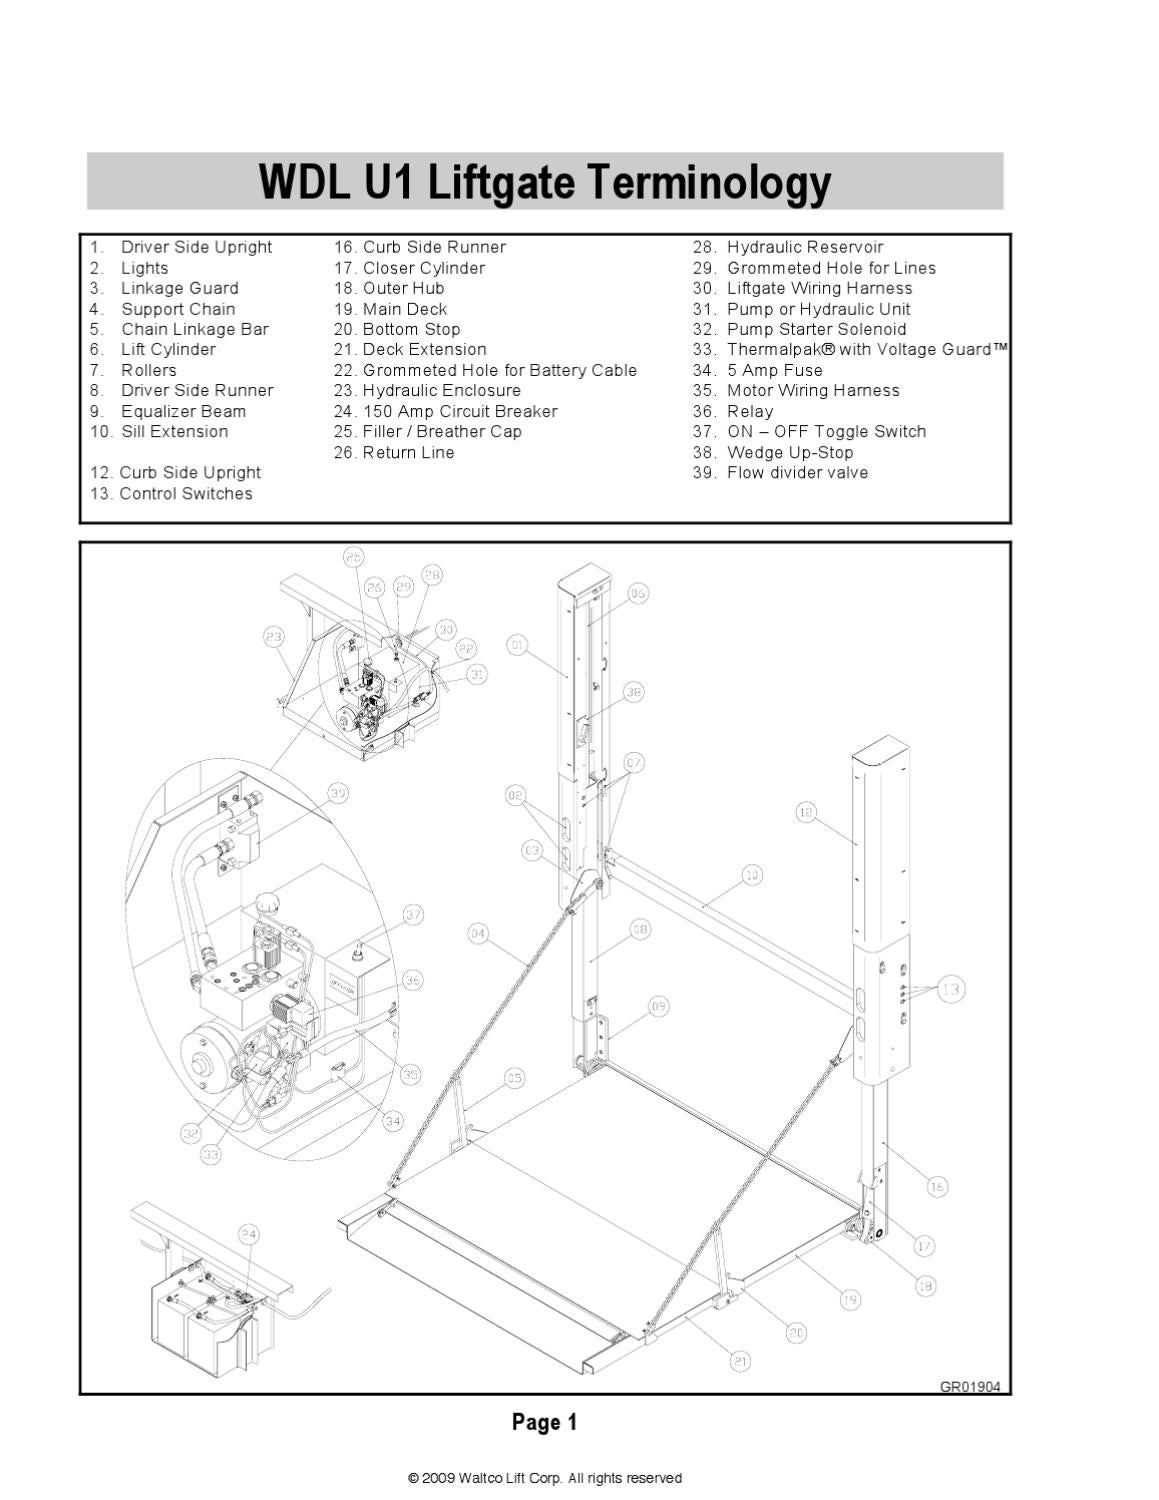 wire diagram lift gate pumps detailed schematics diagram rh antonartgallery com anthony liftgate wiring diagram maxon liftgate wiring diagram